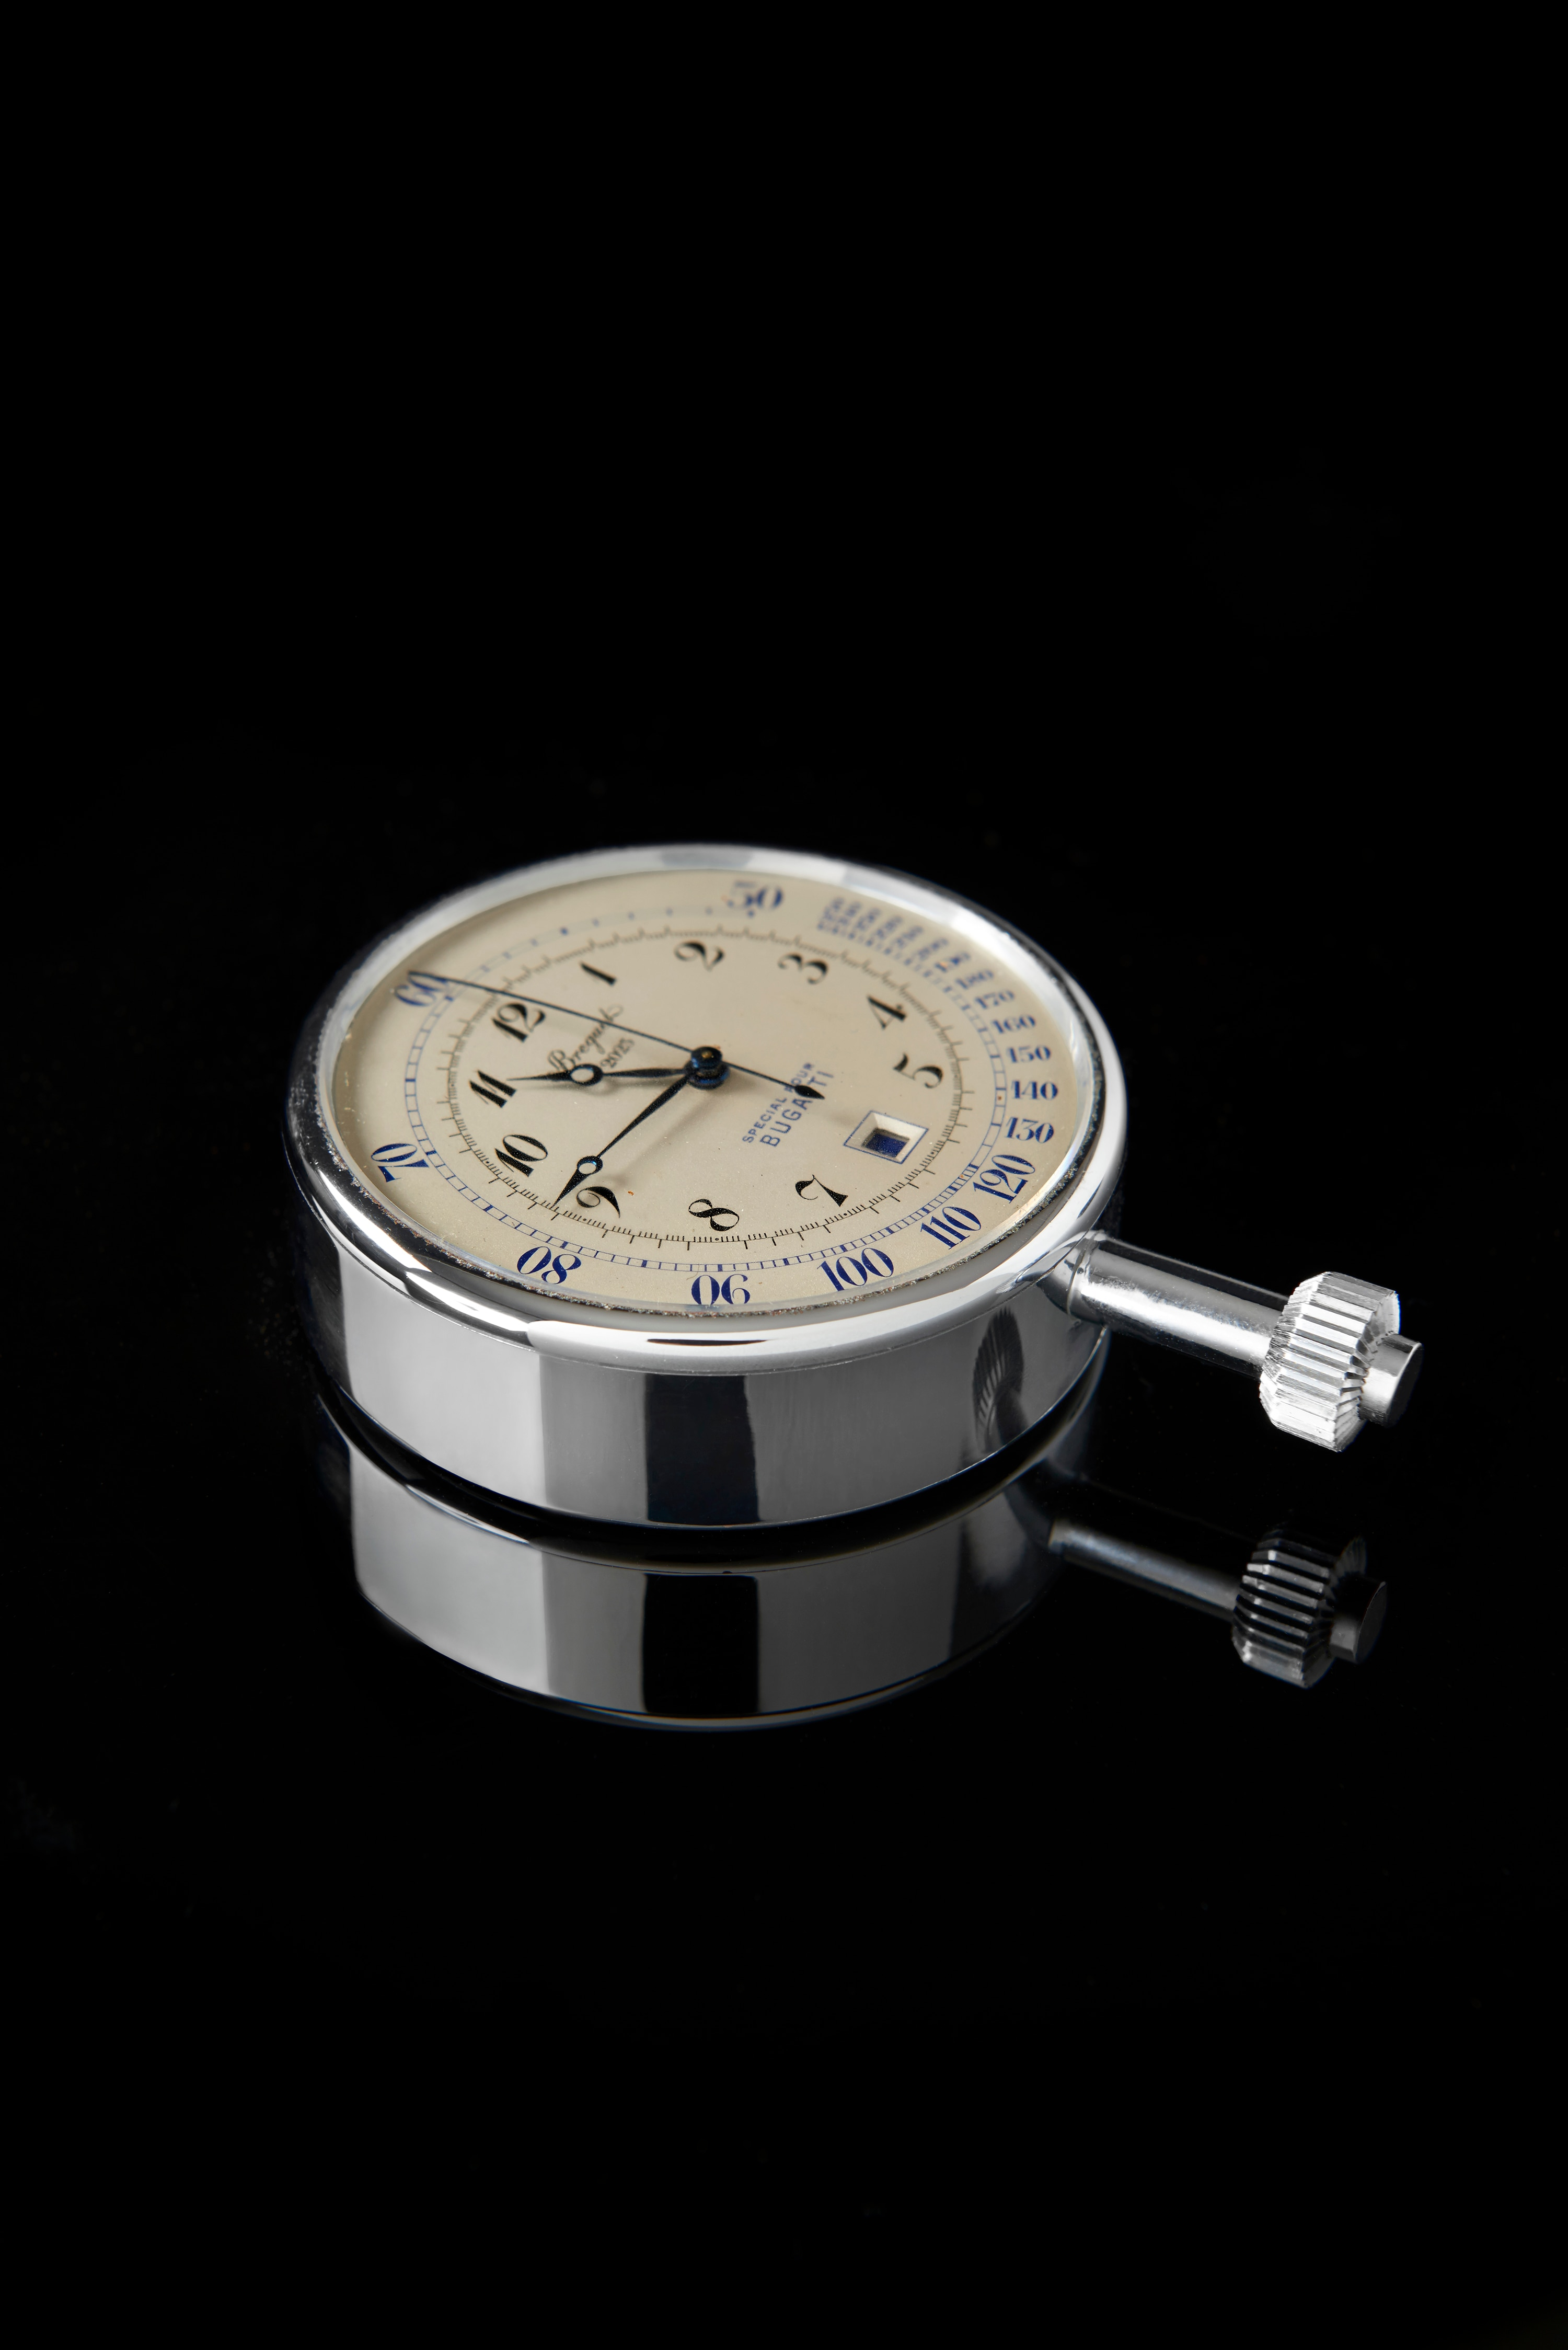 Chronograph with a tachymeter function